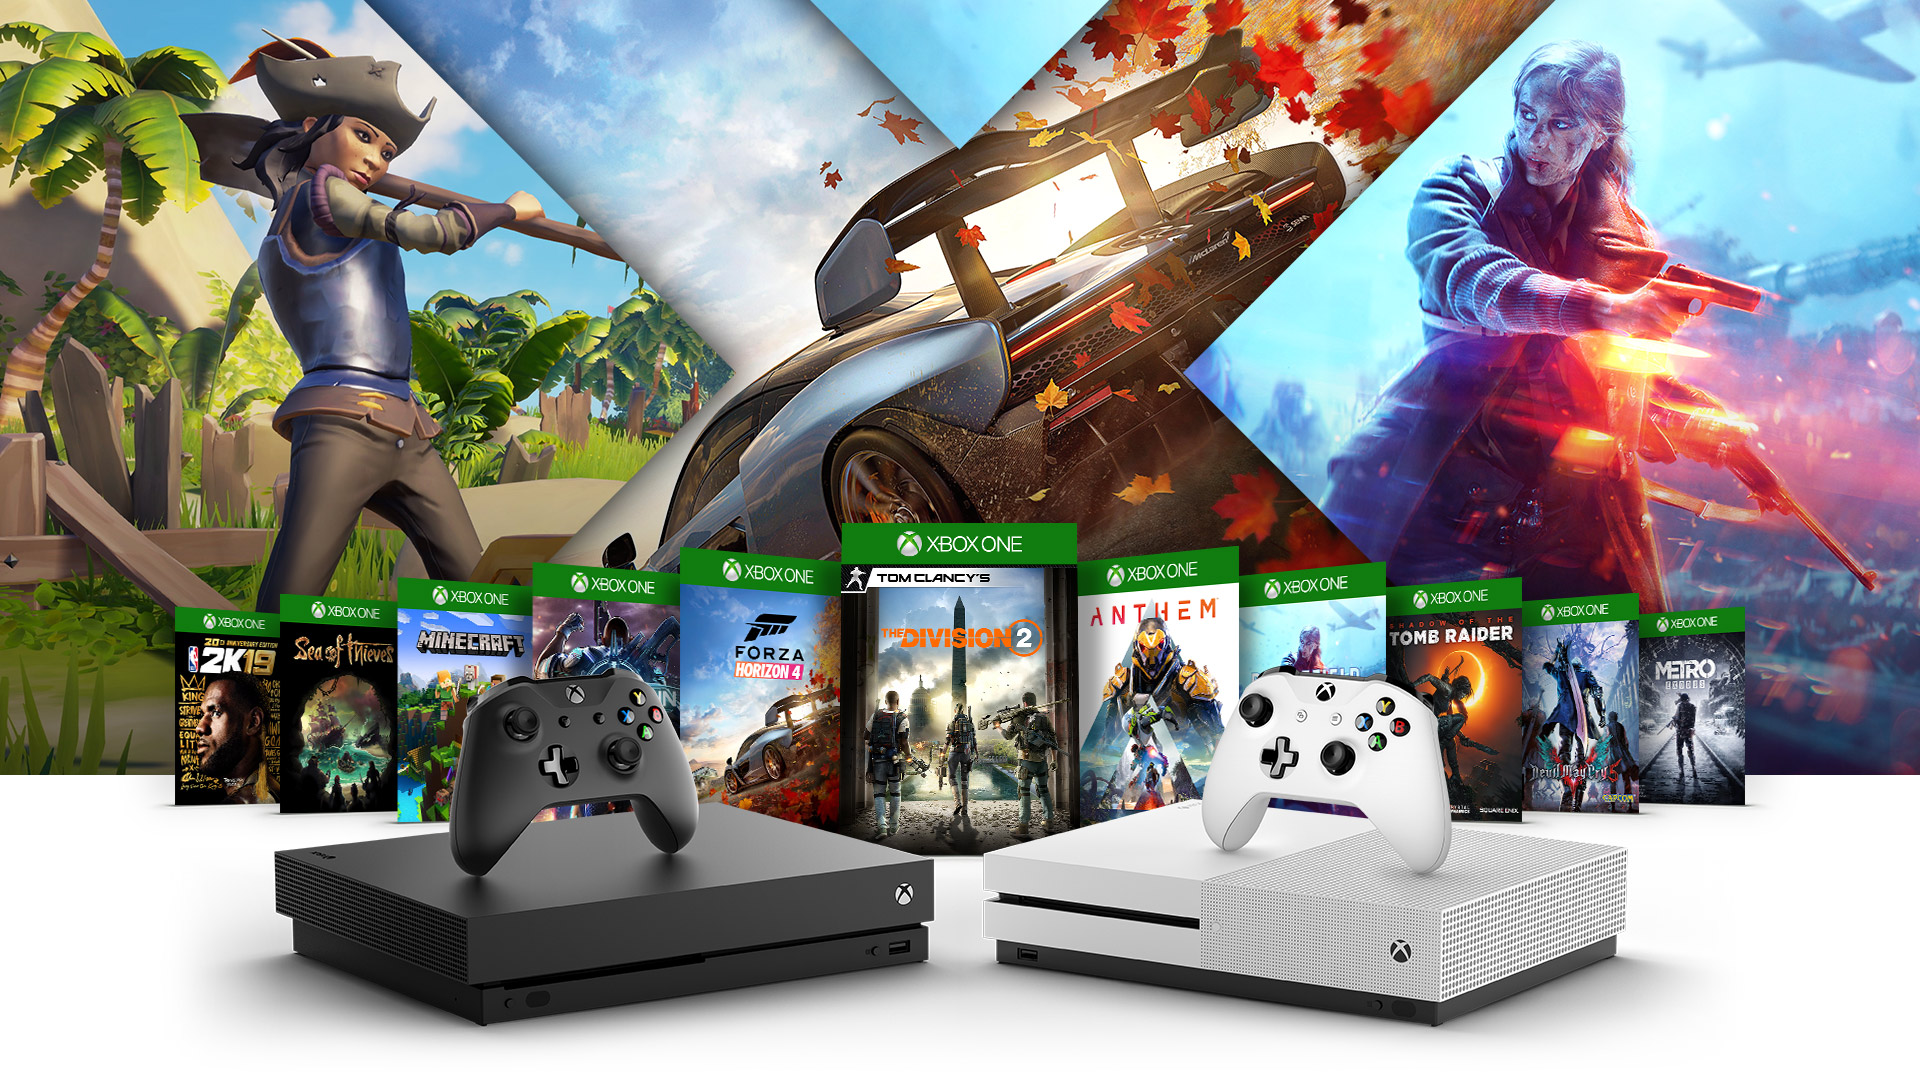 Boční pohled na Xbox One X, Xbox One S a Xbox One S All Digital Edition s krabicemi od her Crackdown 3, Sea of Thieves, Minecraft, Madden 19, 2K19, Forza Horizon 4, Fallout 76, Battlefield Five, Shadow of the Tomb Raider, PlayerUnknown Battlegrounds a State of Decay 2.